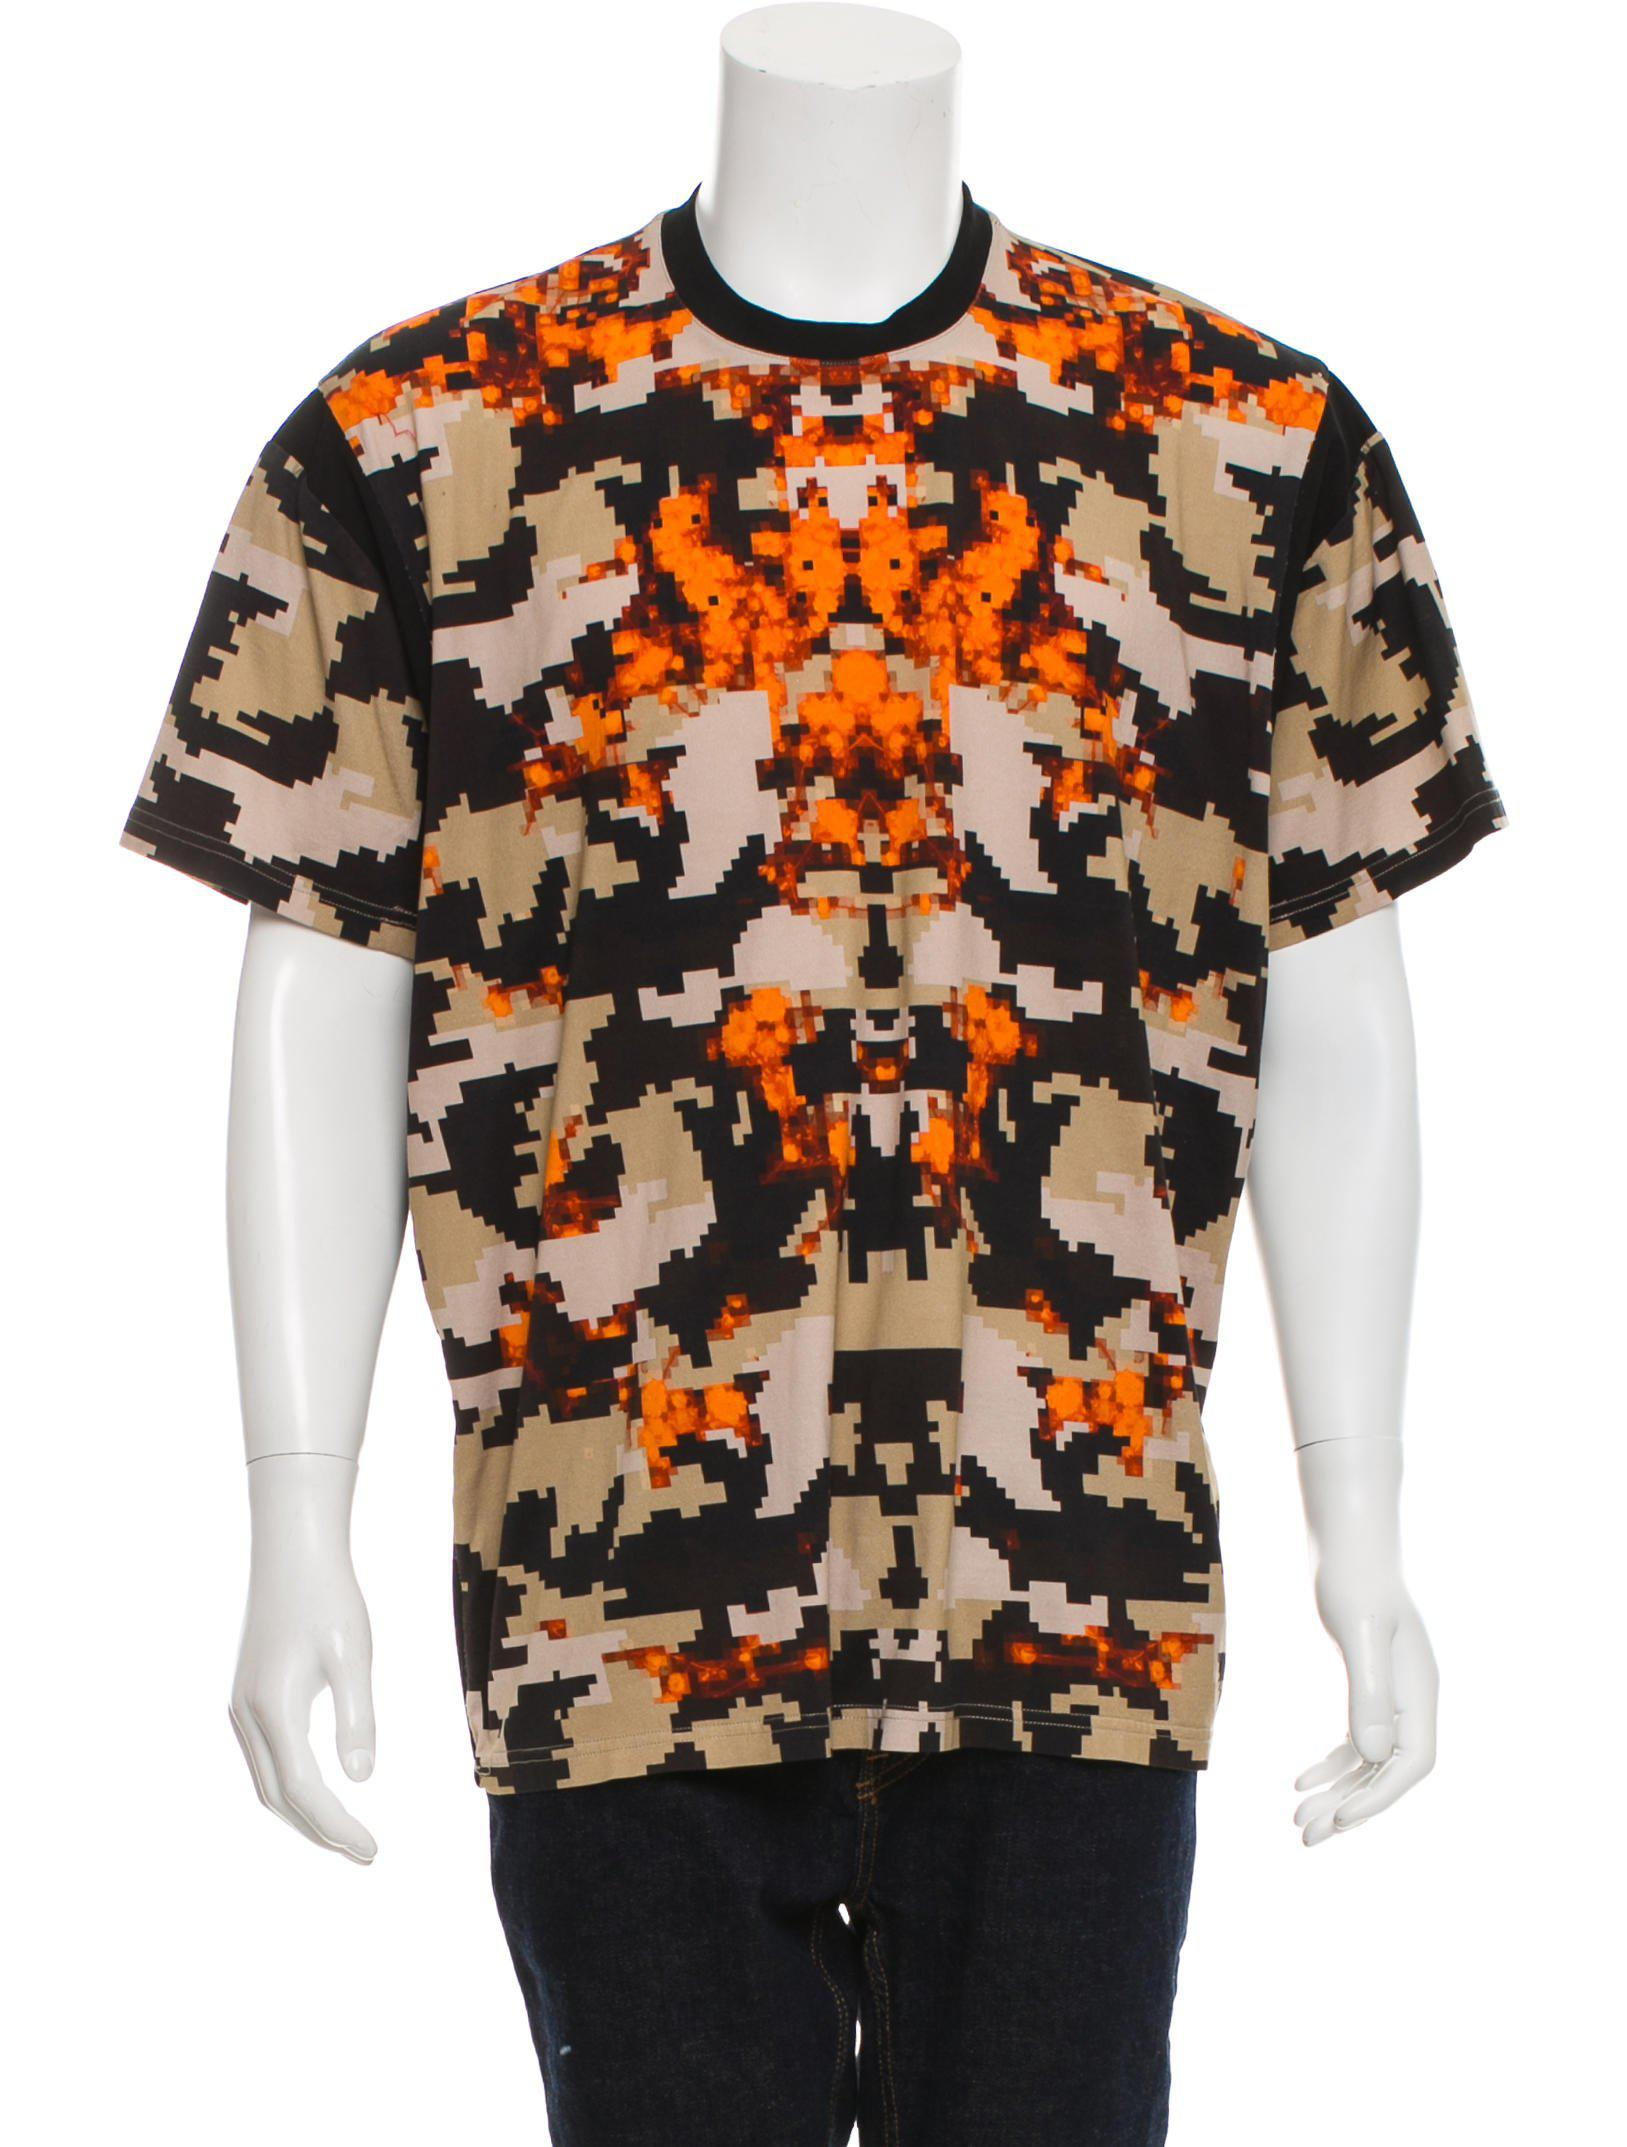 9b9d271ed Lyst - Givenchy Camo Fire Print T-shirt Black in Natural for Men